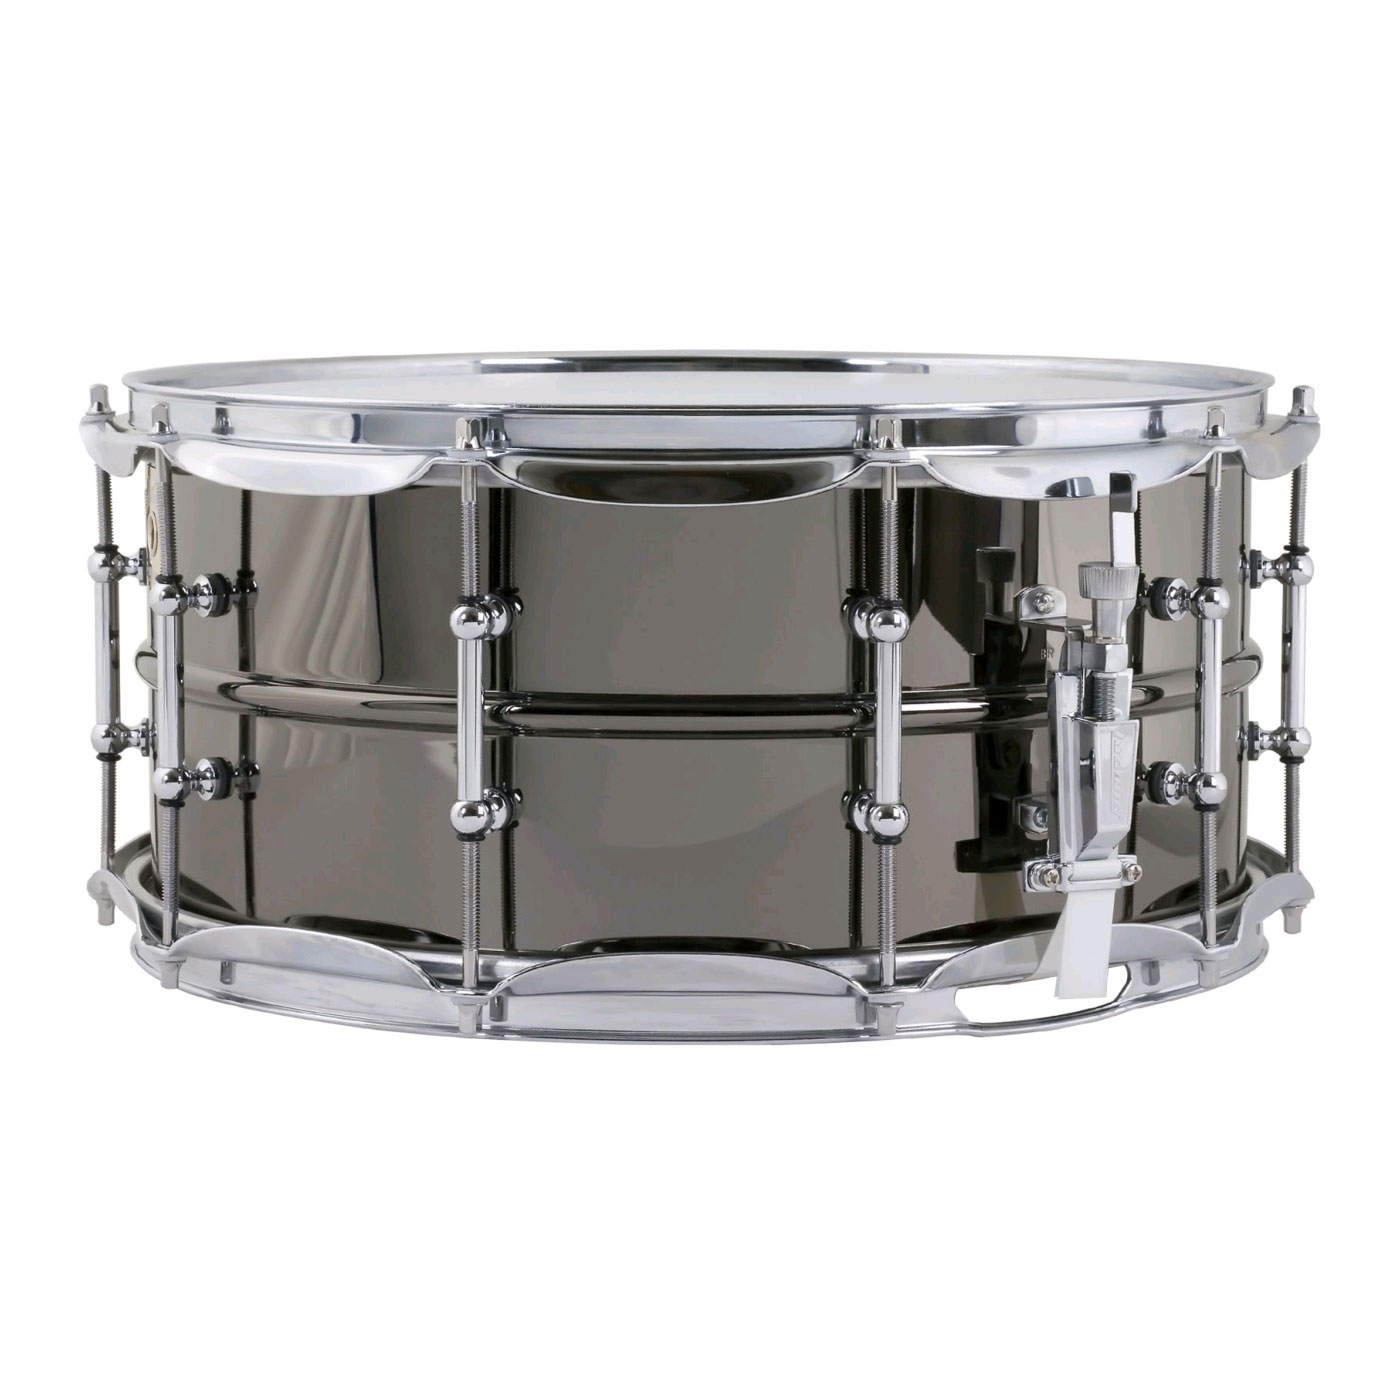 "Ludwig 6.5"" x 14"" Black Beauty Brass Snare Drum with Tube Lugs and Chrome Hardware"